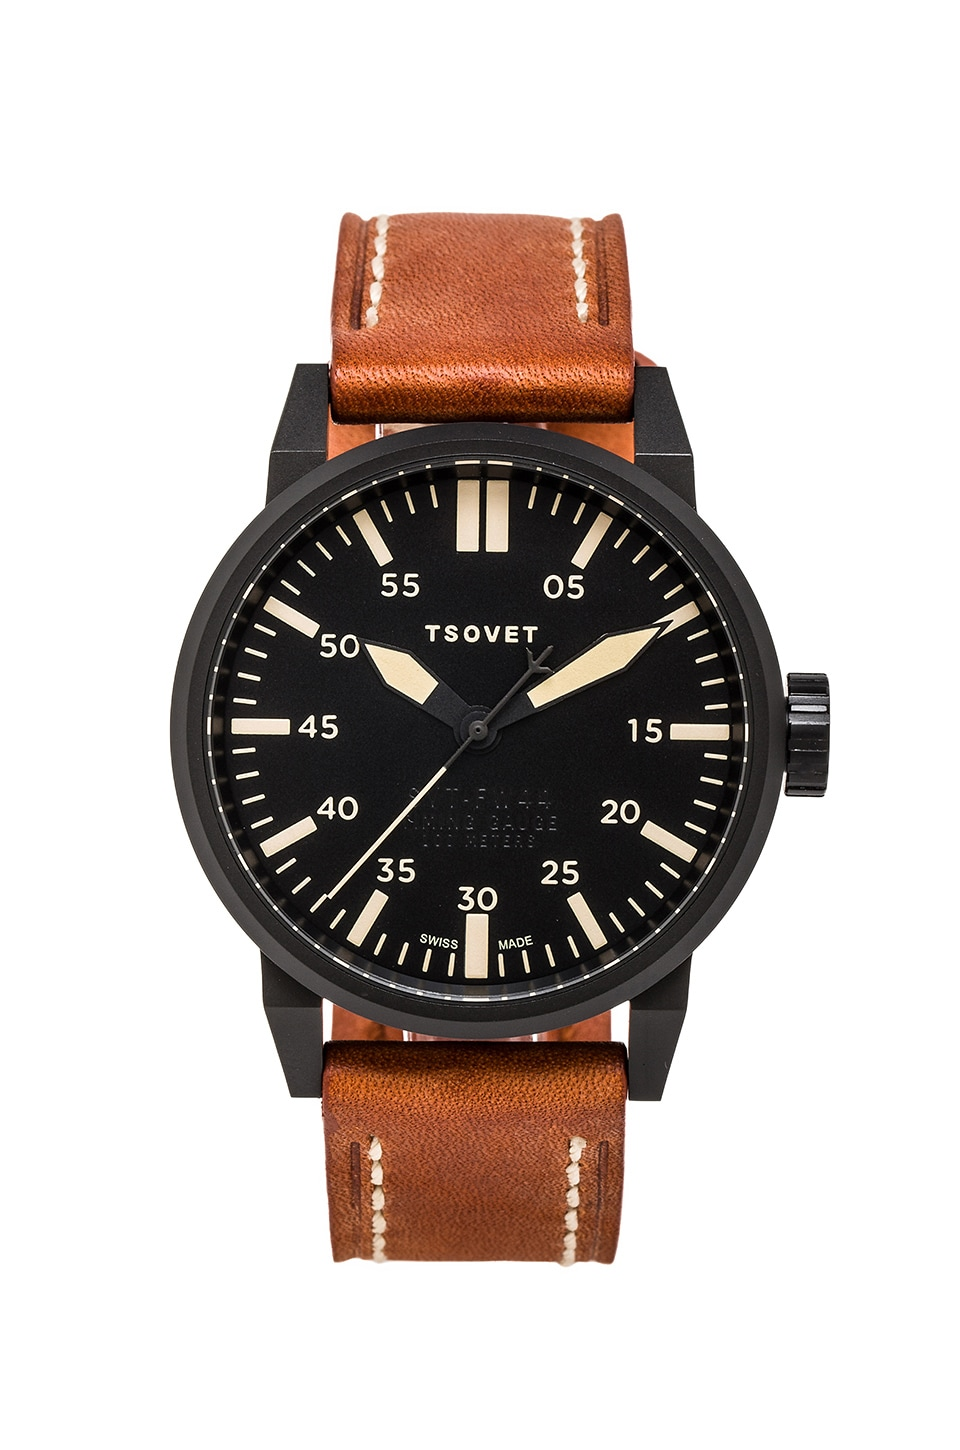 Tsovet SVT-FW44 in Black Brown Leather